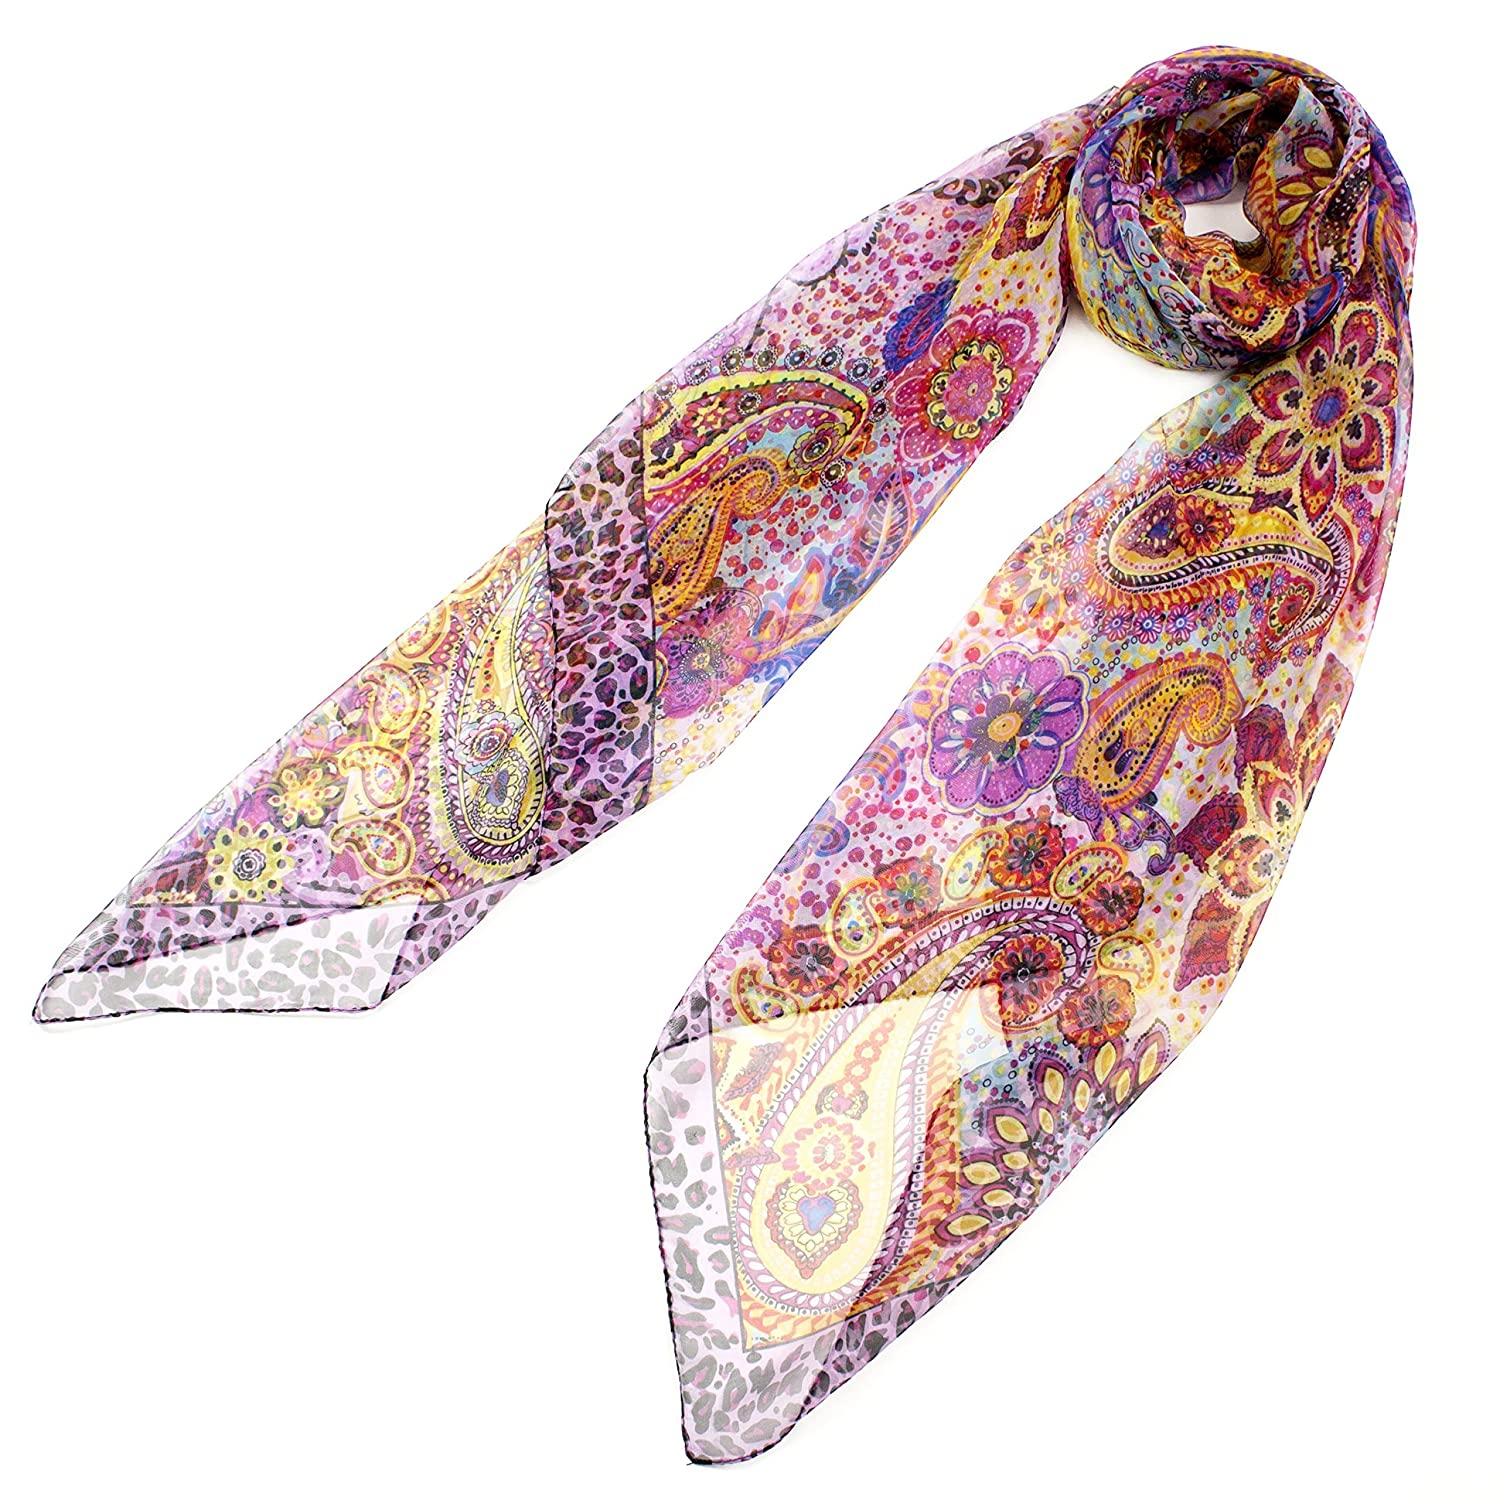 "Leisureland Women's 60% Silk Purple Paisley Floral Scarf 54"" x 54"" Large Size"